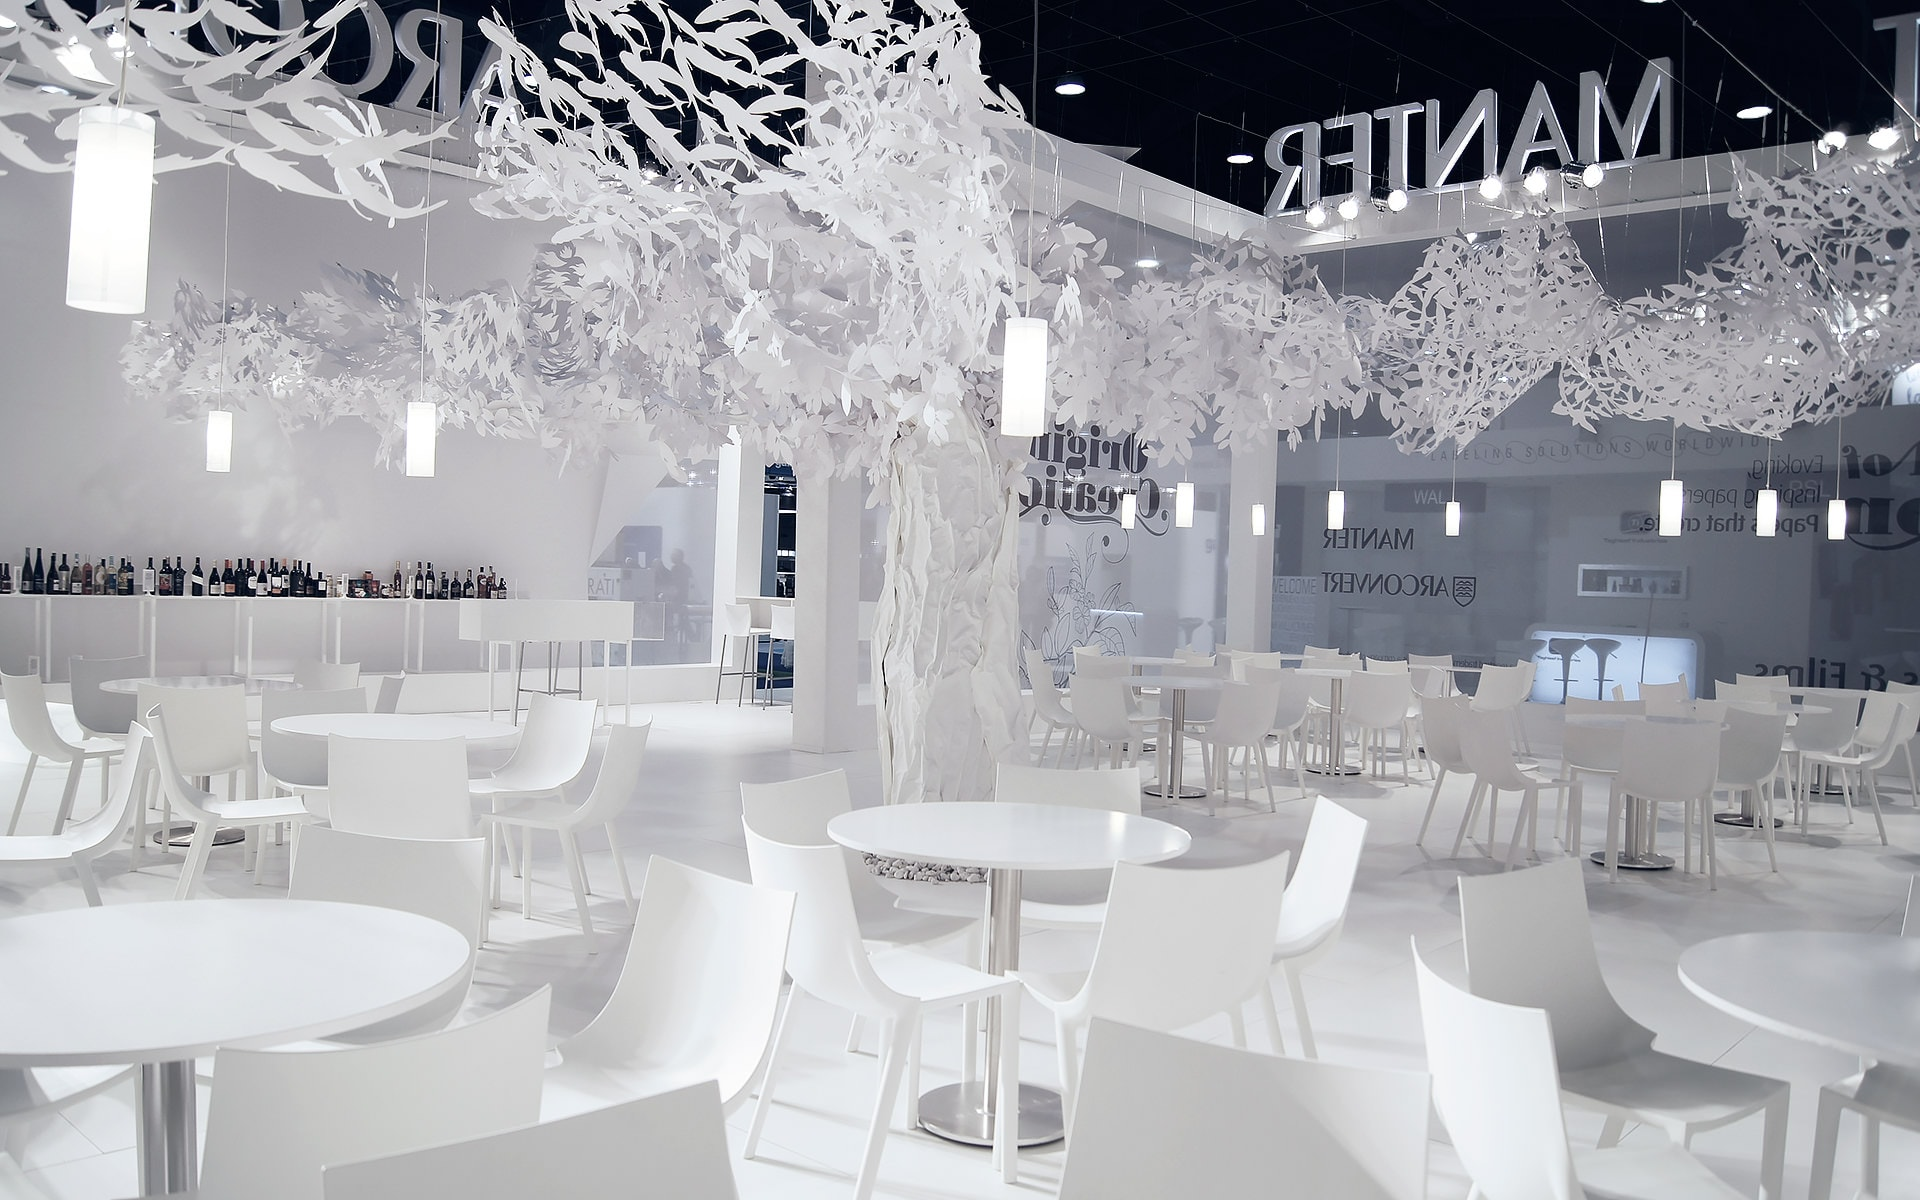 Manter Labelexpo trade fair (EXPO) stand design